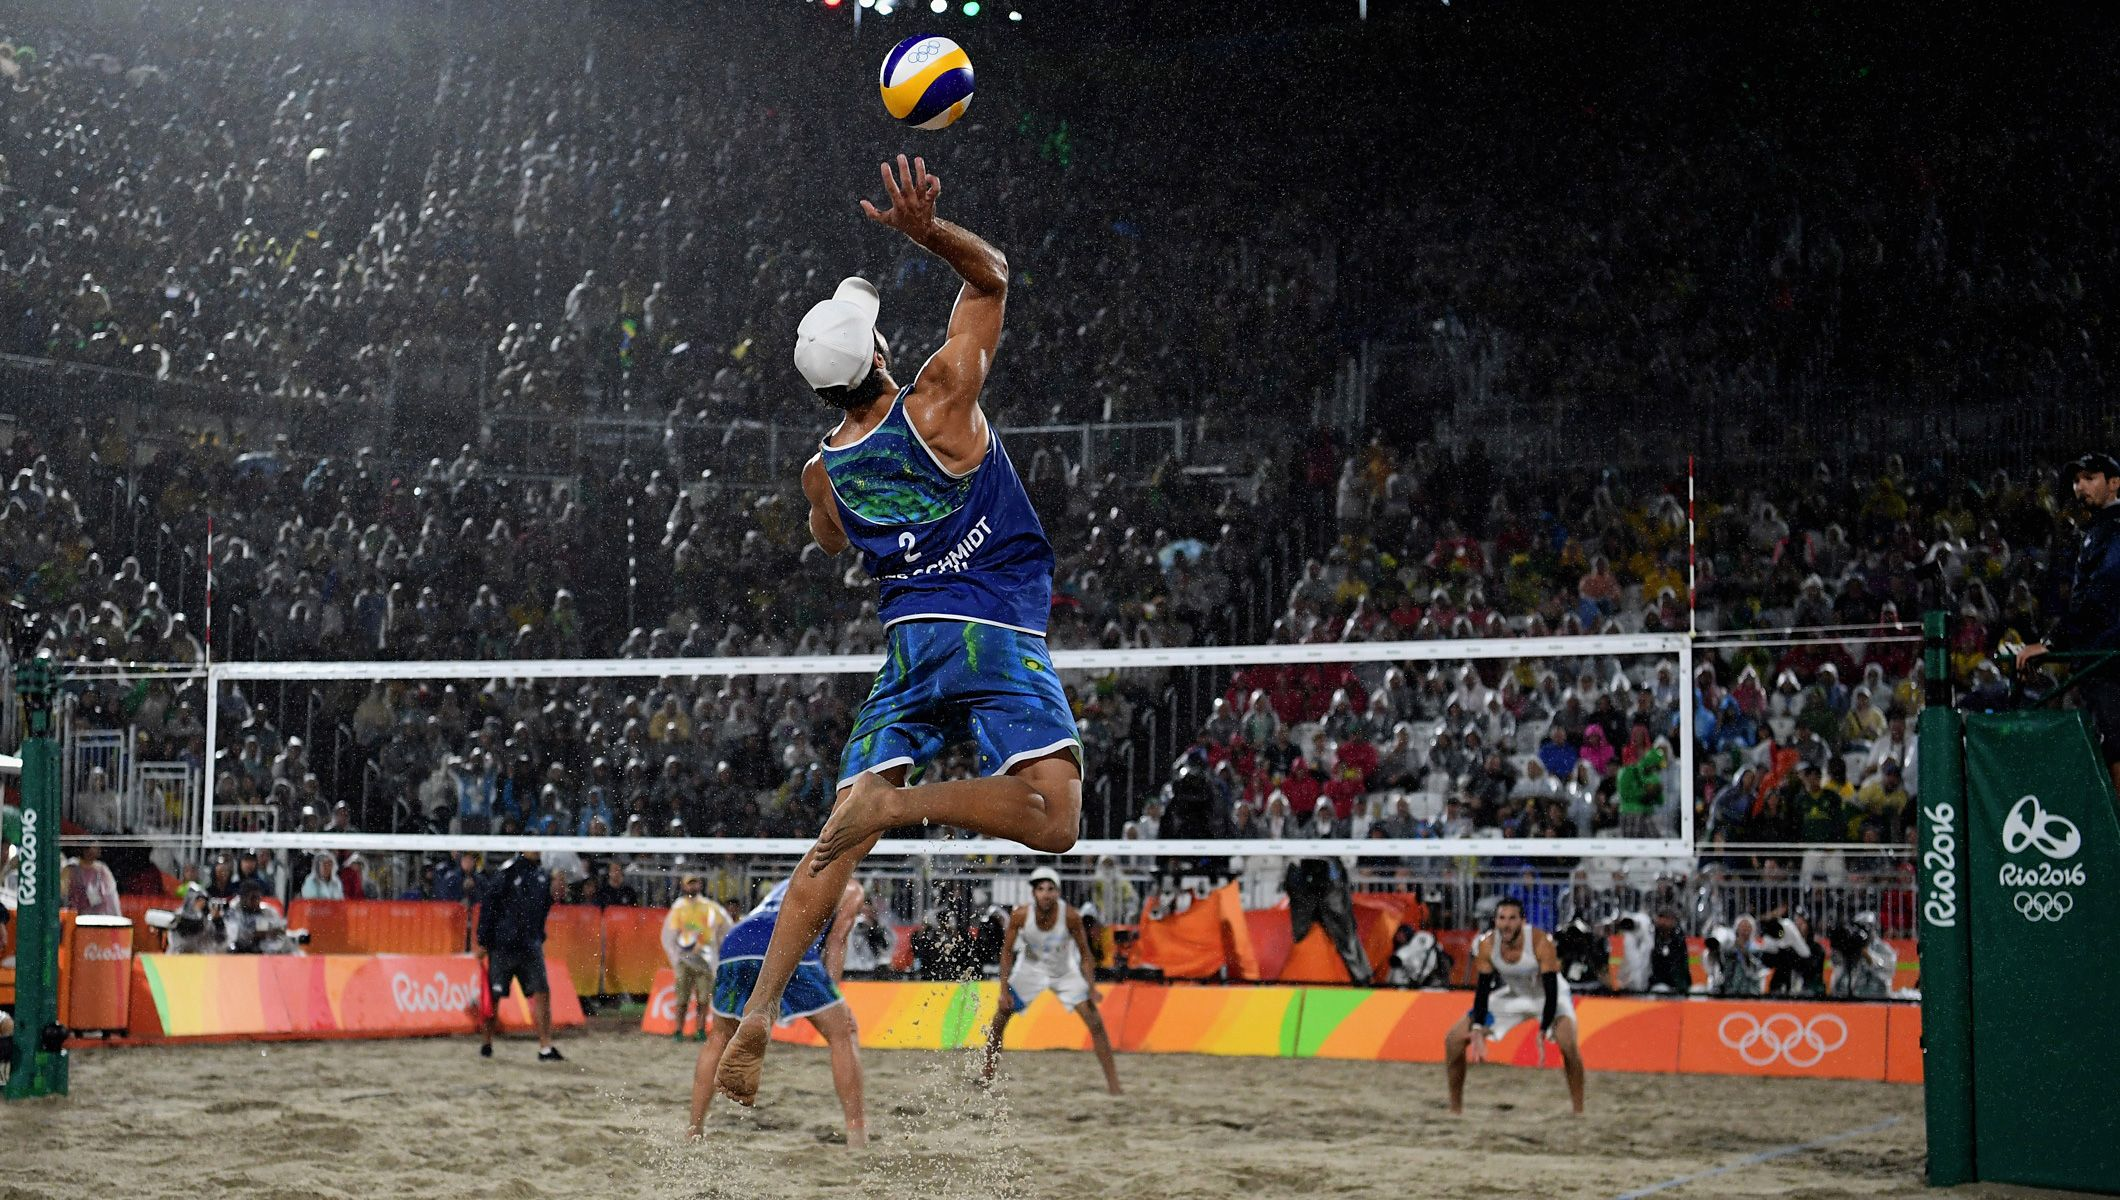 Reigning World Champions Alison Cerutti And Bruno Oscar Schmidt Of Brazil Got Beach Volleyball Volleyball Rio Olympics